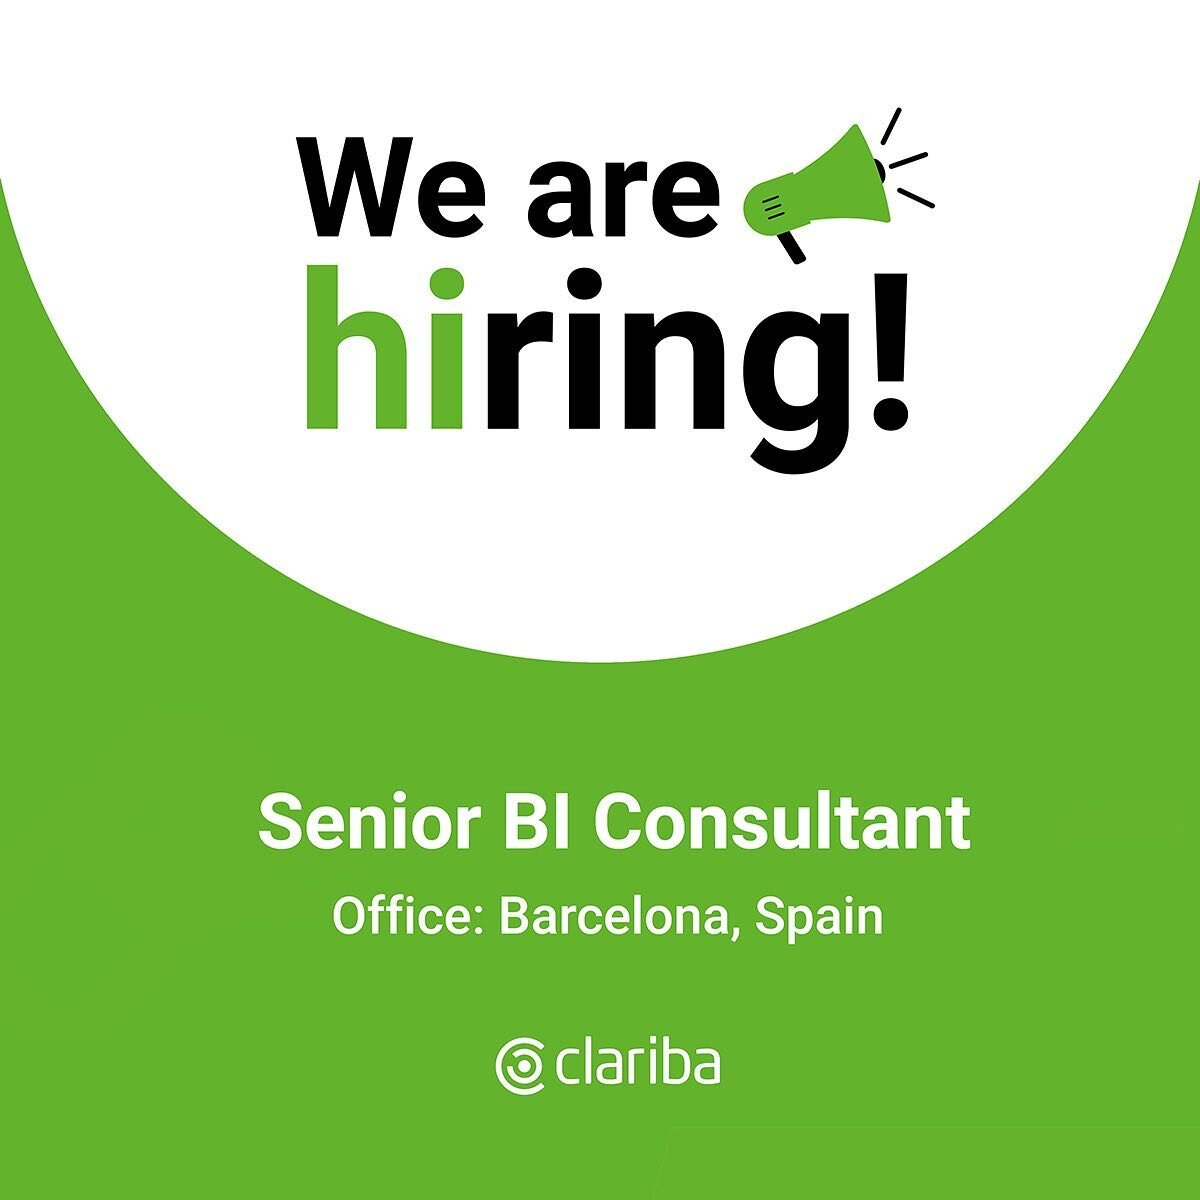 👋 Hey! We are looking for a motivated Senior BI Consultant to join our team in Barcelona. 👉Check the link in bio to find out the job details! Let's grow together!  #BeClariba #WeAreHiring #JobOportunities #hiring #hr #ClaribaJobs #jobs #BusinessIntelligence #BIJobs